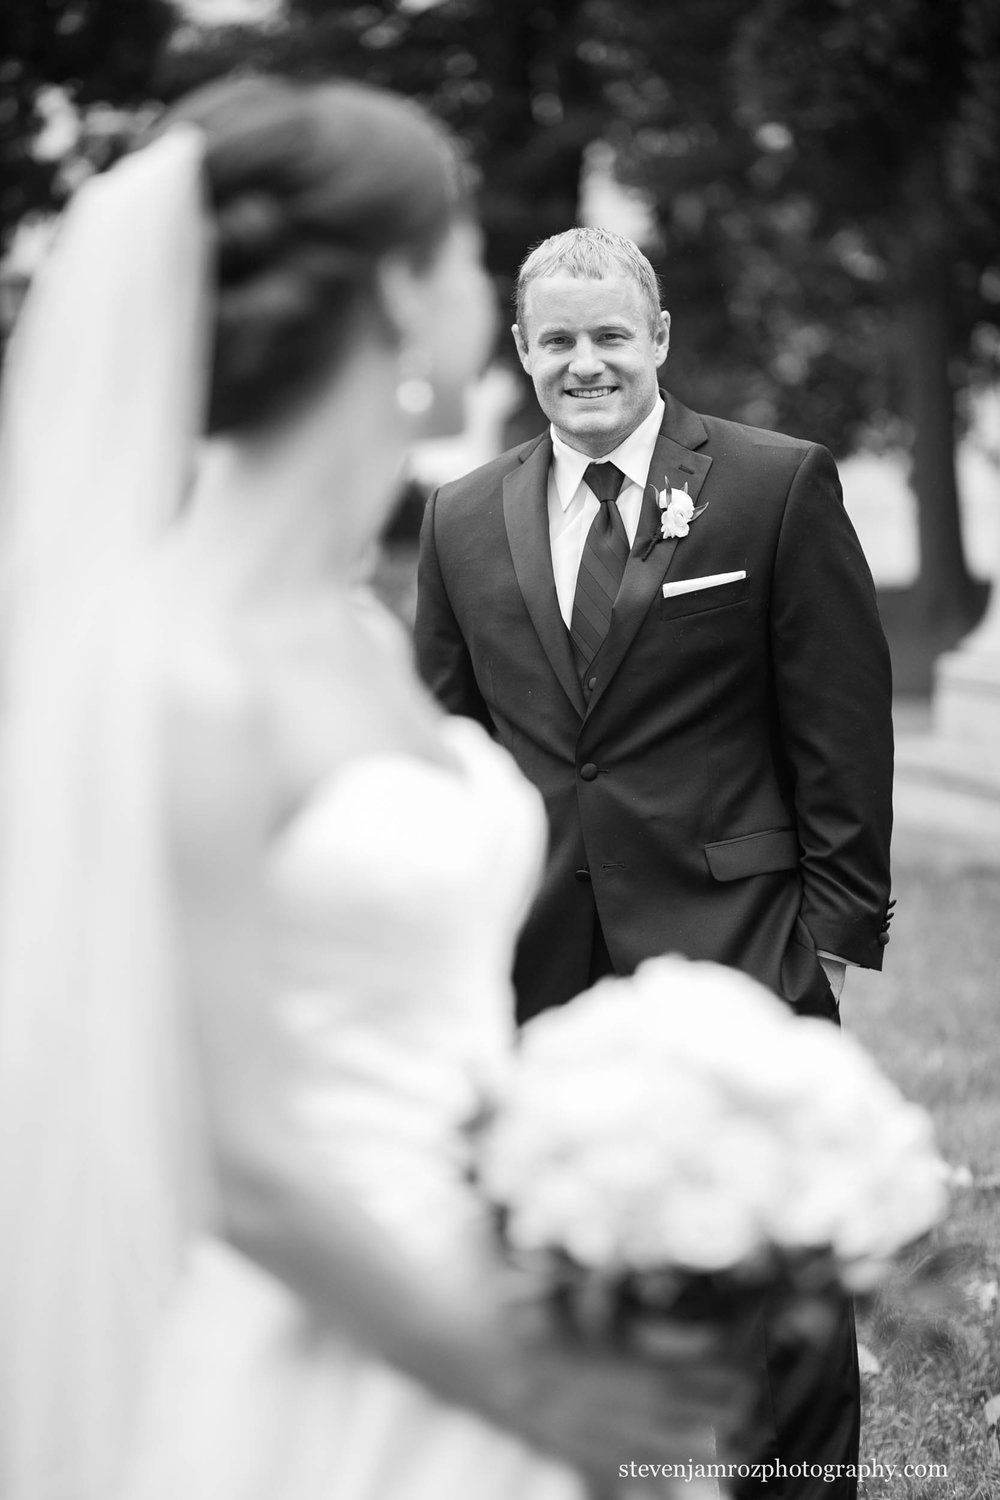 nc-sate-capital-wedding-pictures-photographer-steven-jamroz-0708.jpg